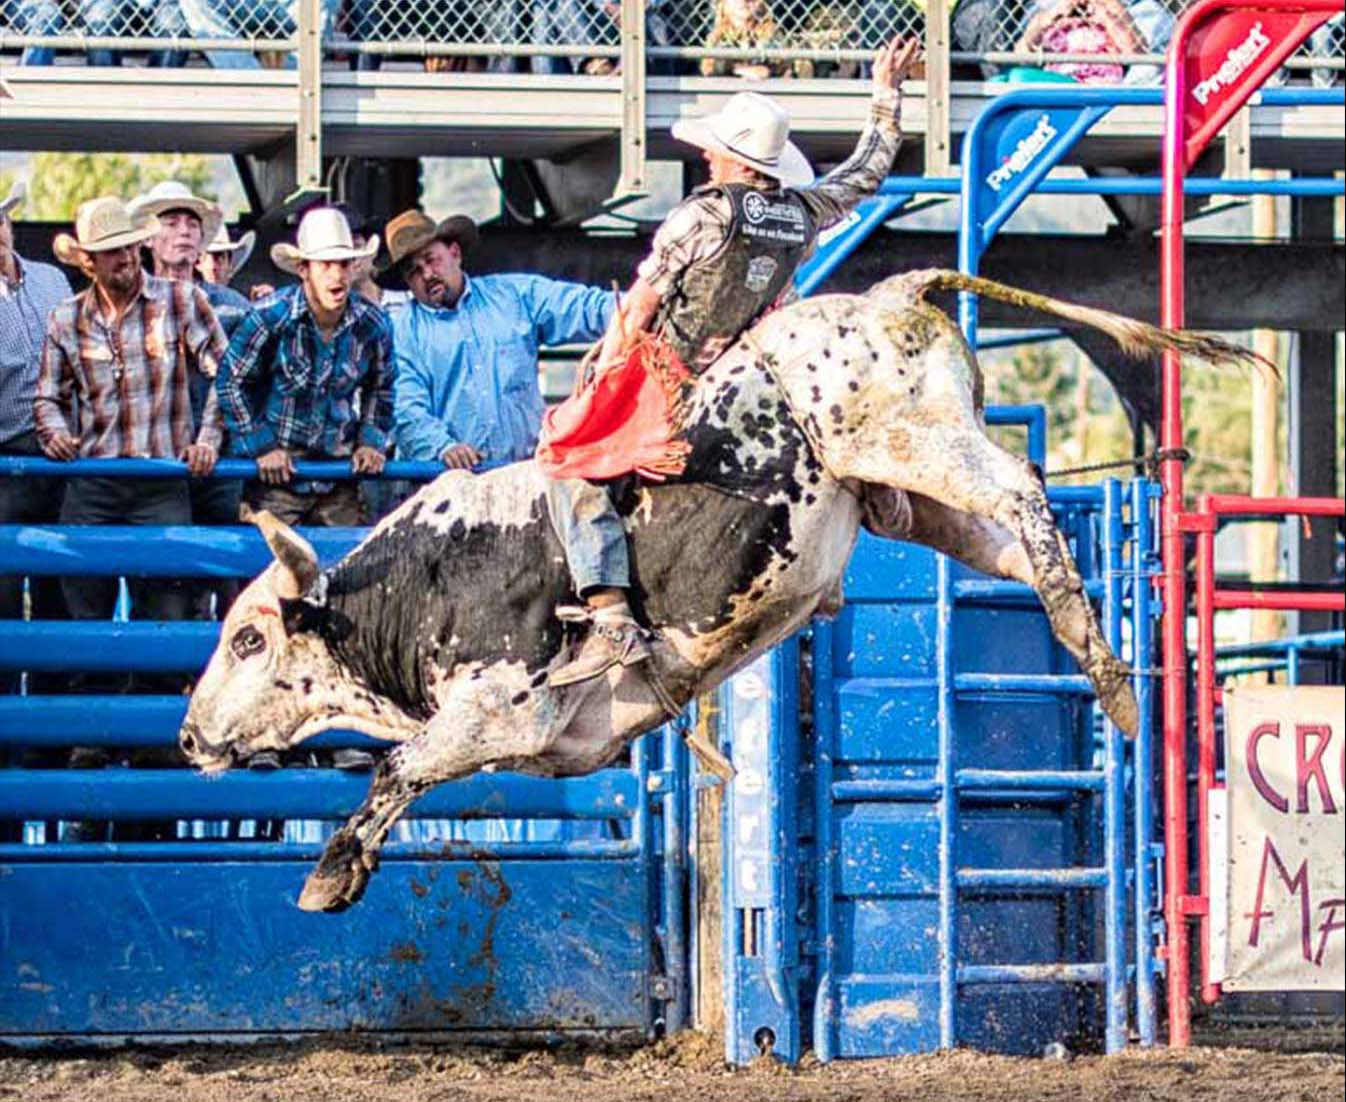 Bull Rider during Rodeo Days by Mark Ruckman